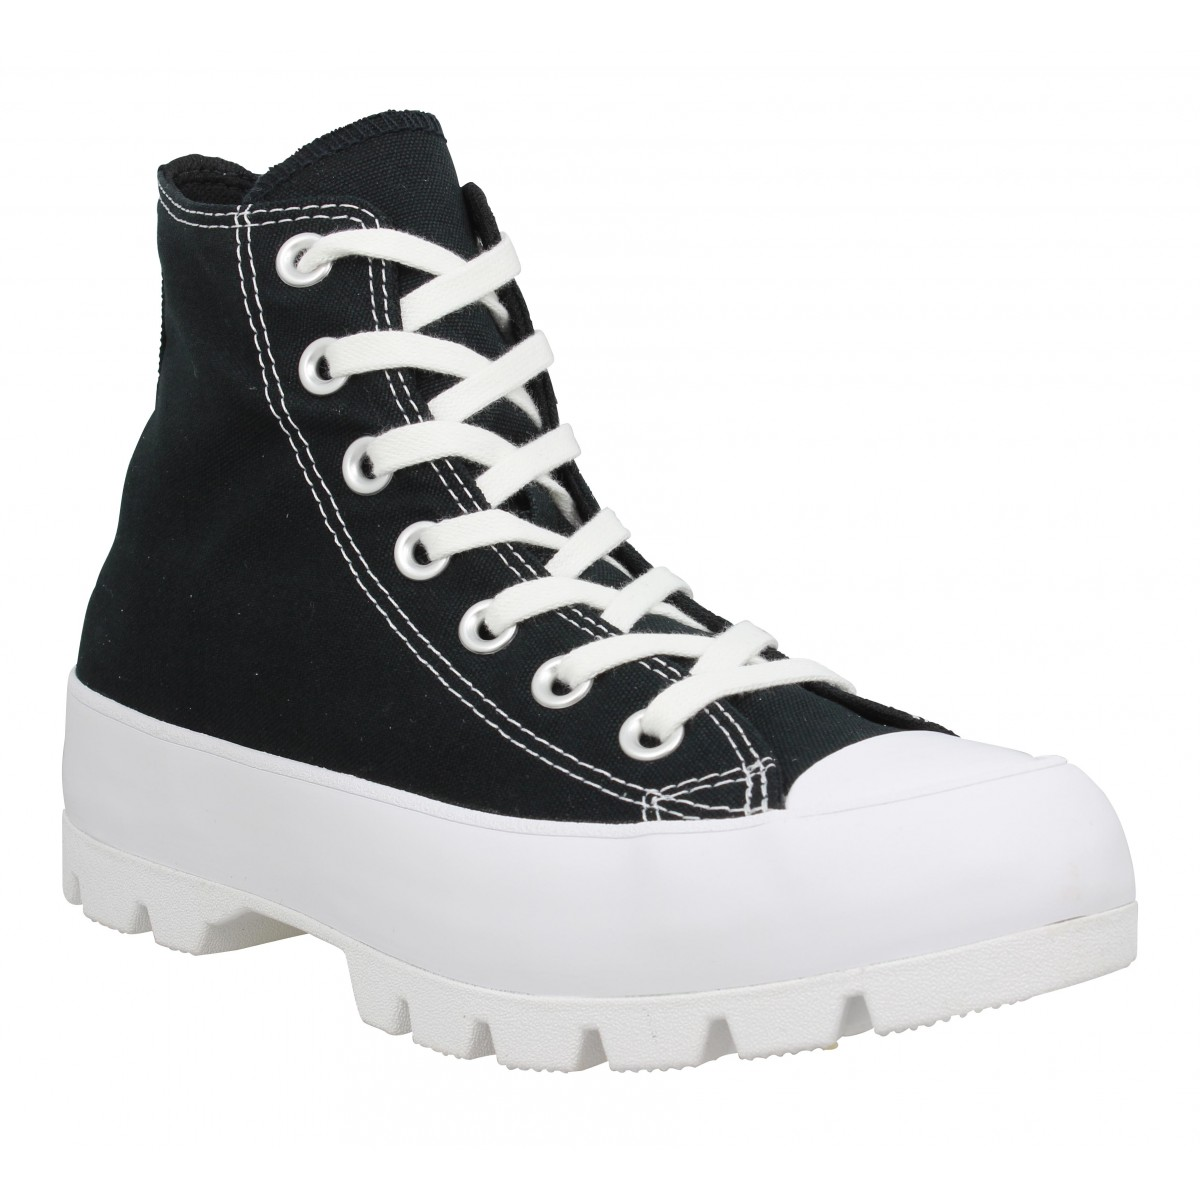 CONVERSE Chuck Taylor All Star Lugged Hi toile Femme Noir